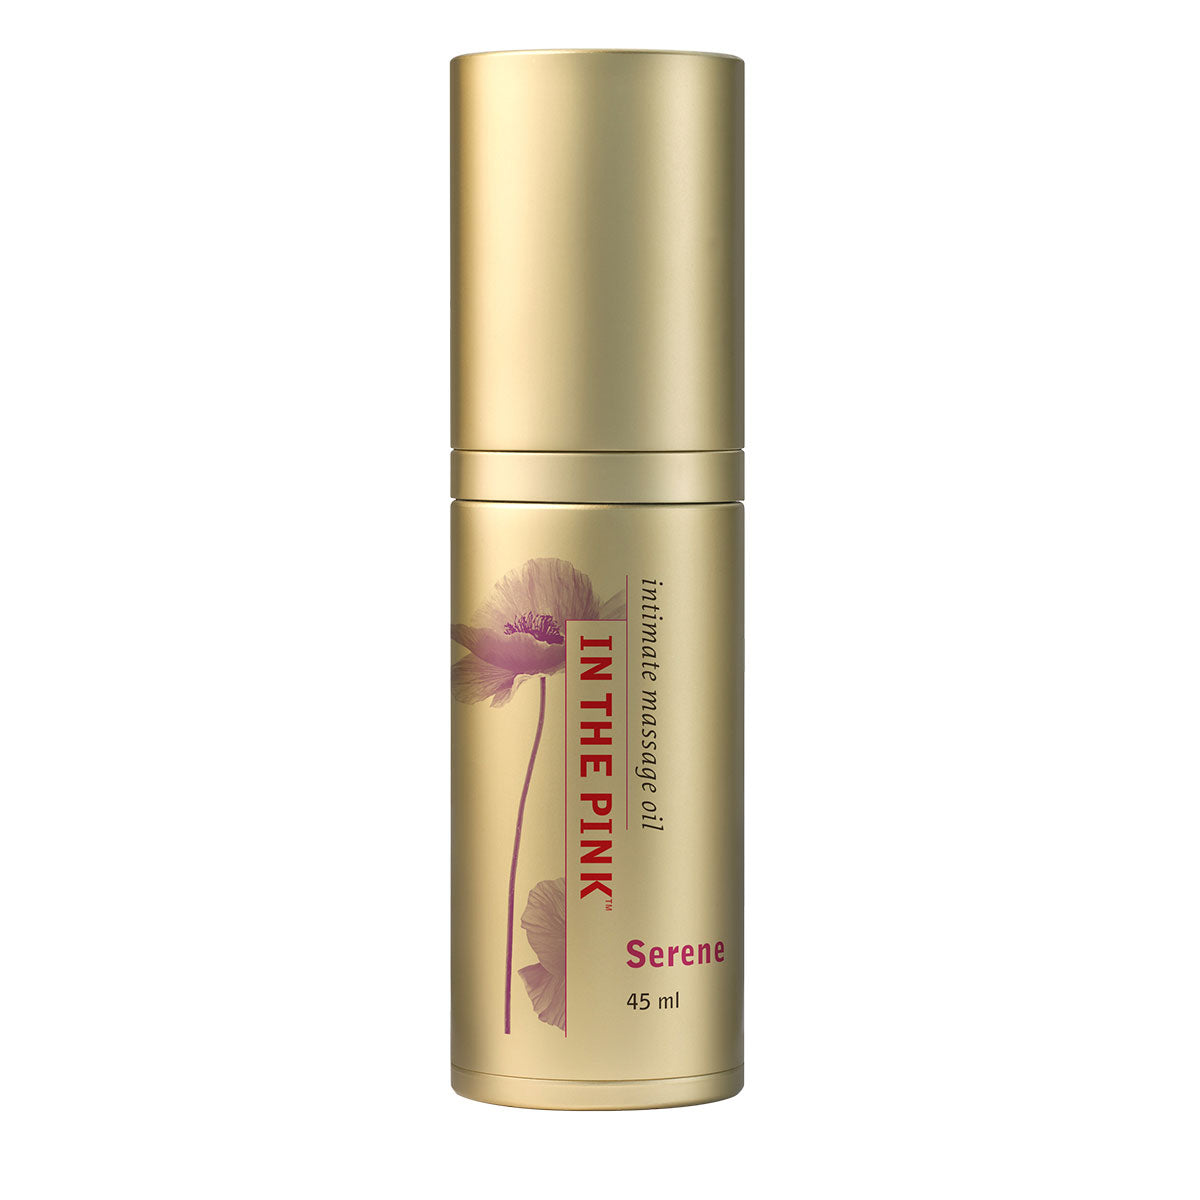 Hip Hemp In the Pink Intimate Massage Oil - Serene